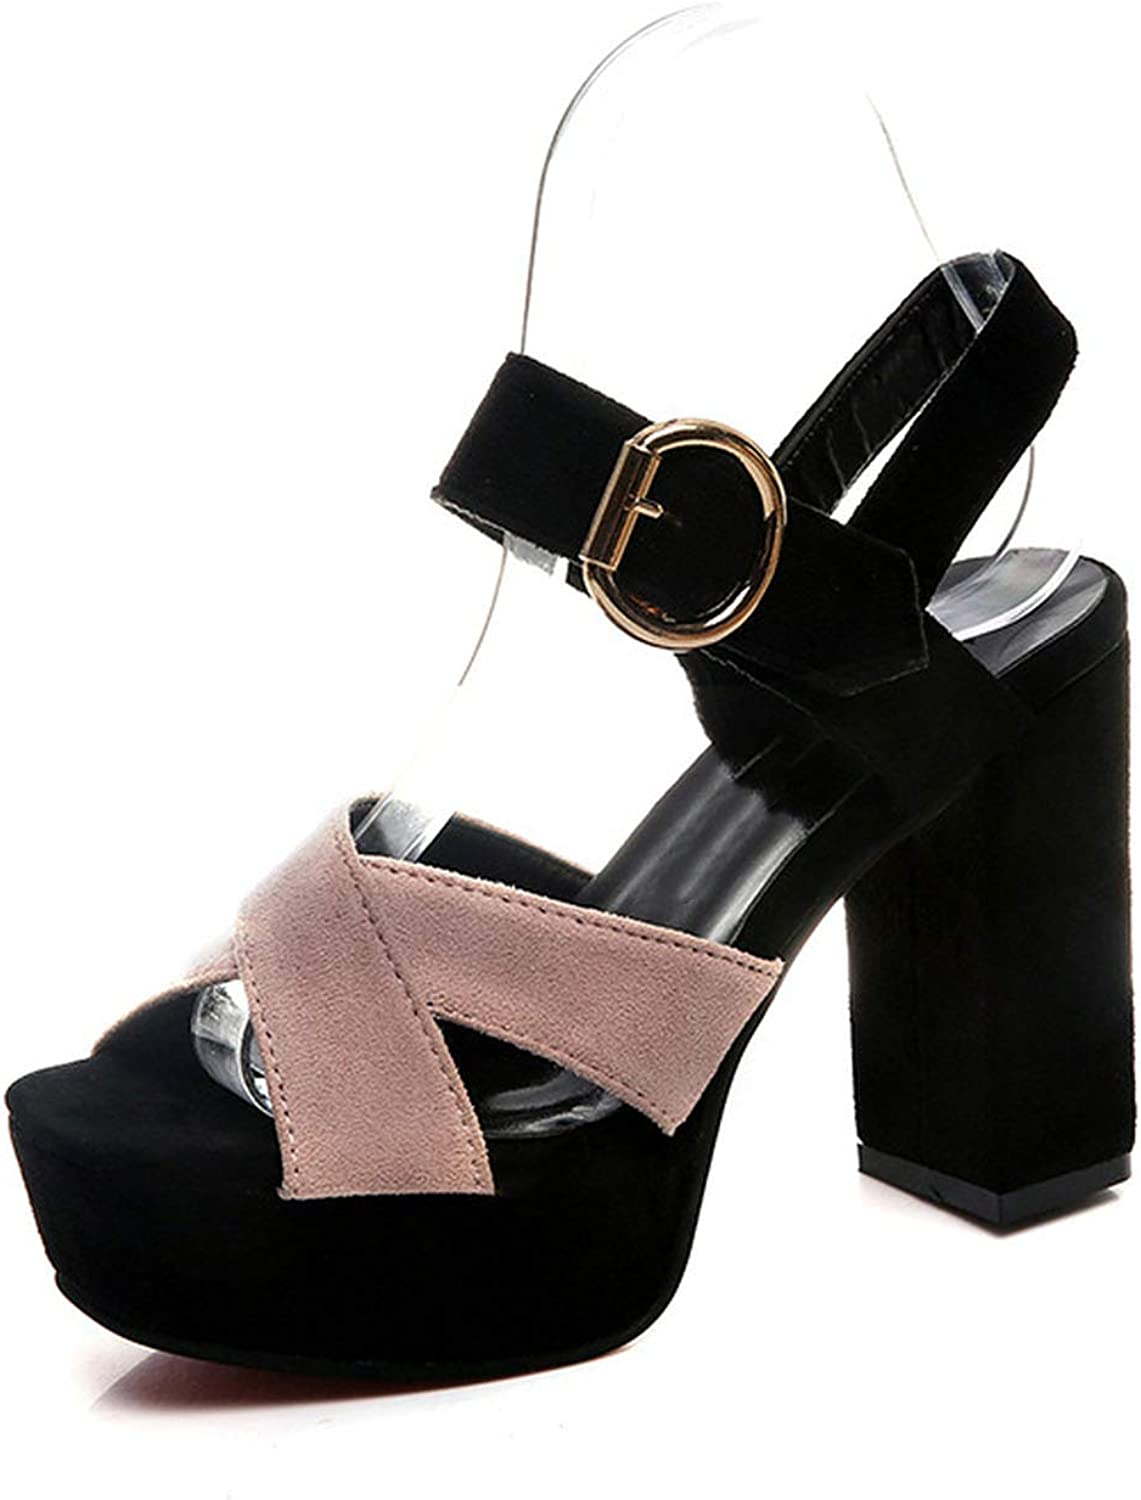 Graceful Fashion Women Casual Sexy Summer Crossed Peep Toe Sandals High Heel Sandals Ankle Belt Buckle shoes